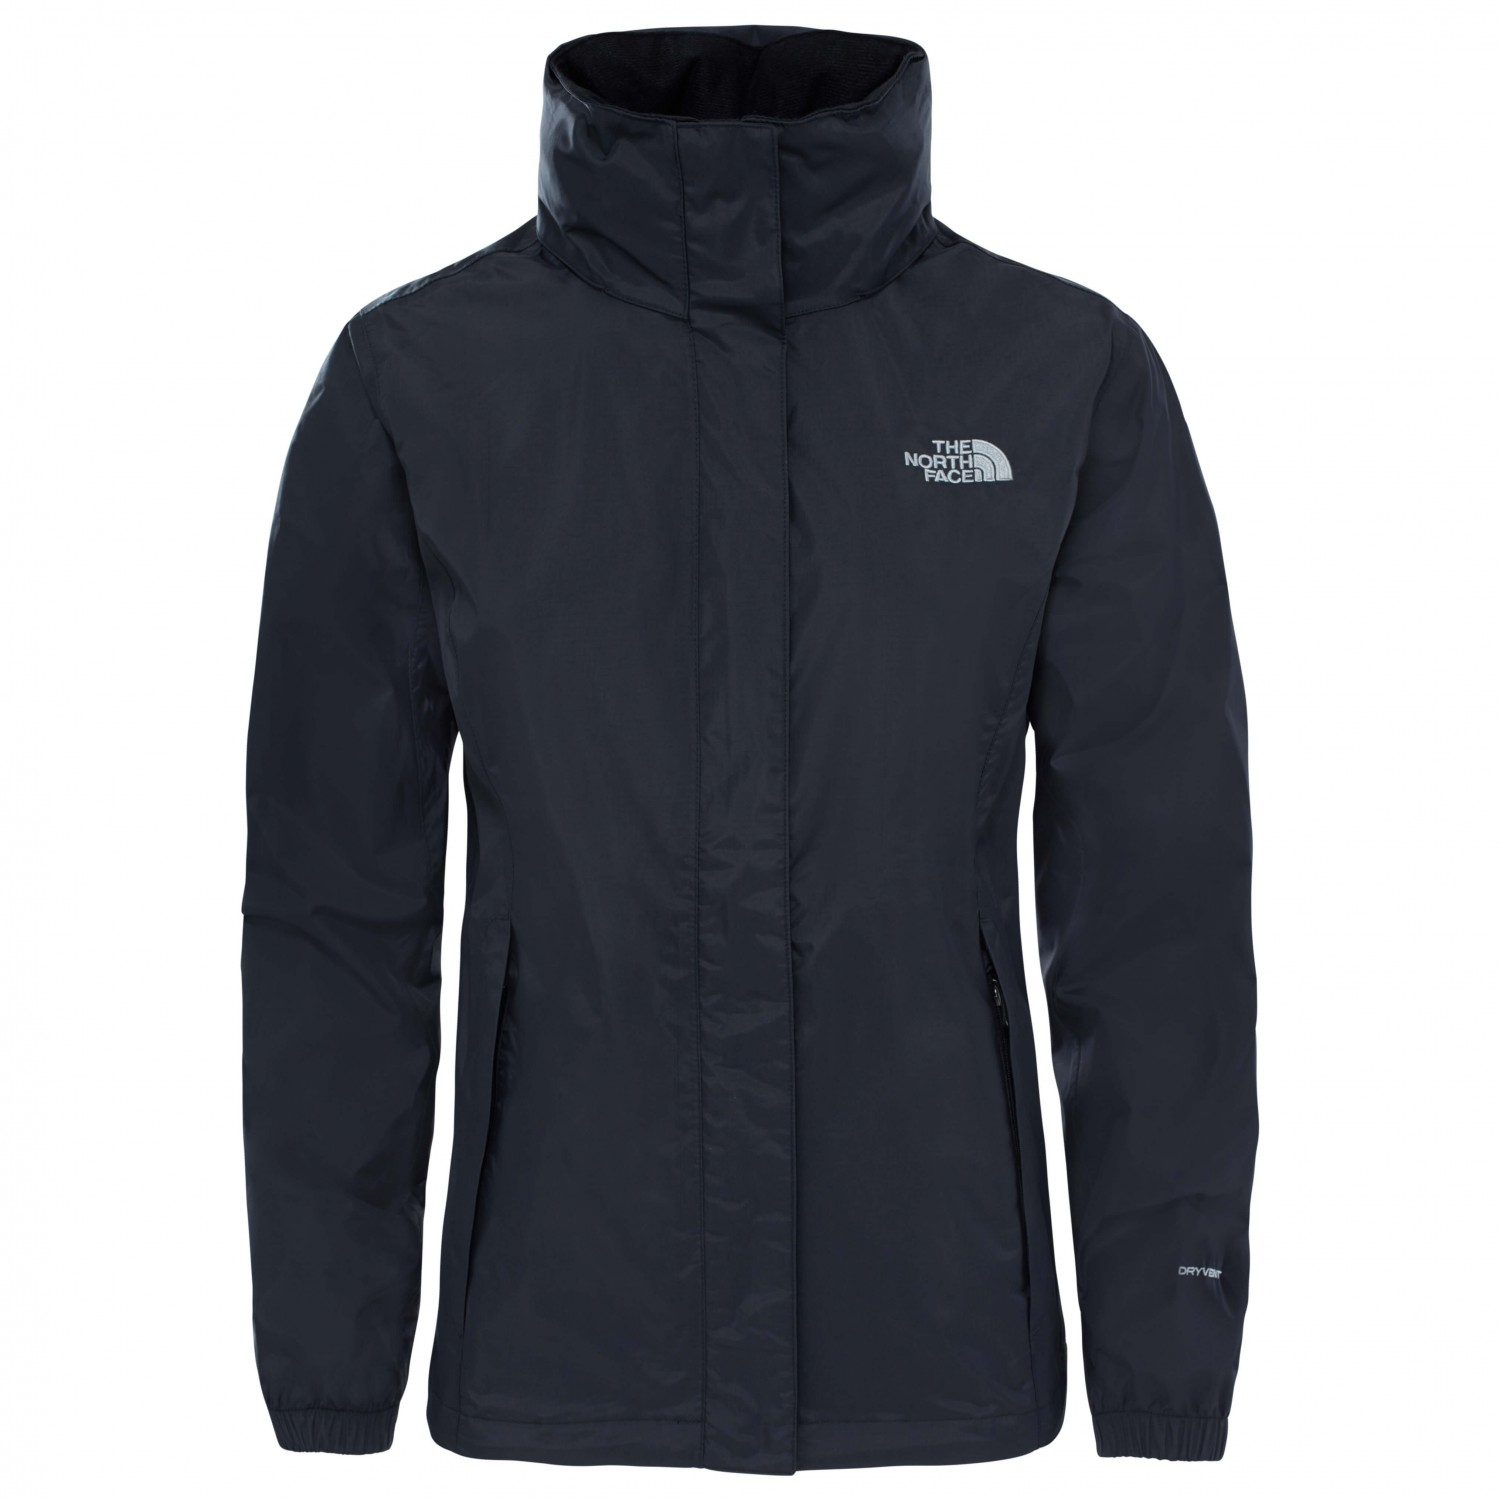 cdaaa22b0d the-north-face-womens-resolve-2-jacket-veste-hardshell.jpg